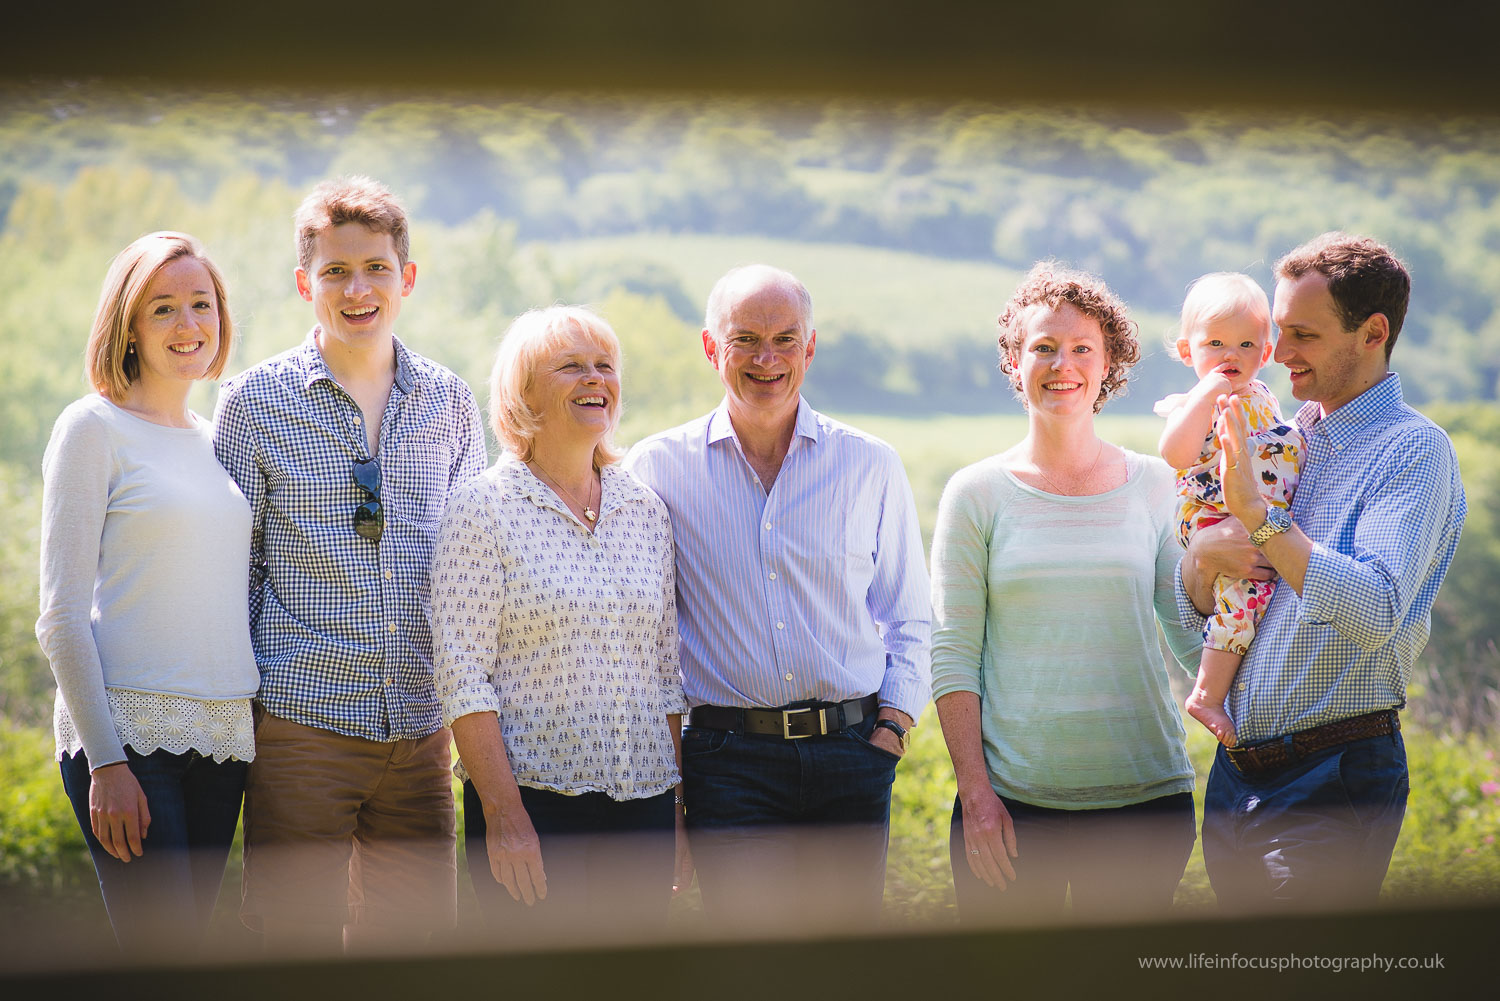 family-portrait-photographers-gloucester-bristol-11.jpg